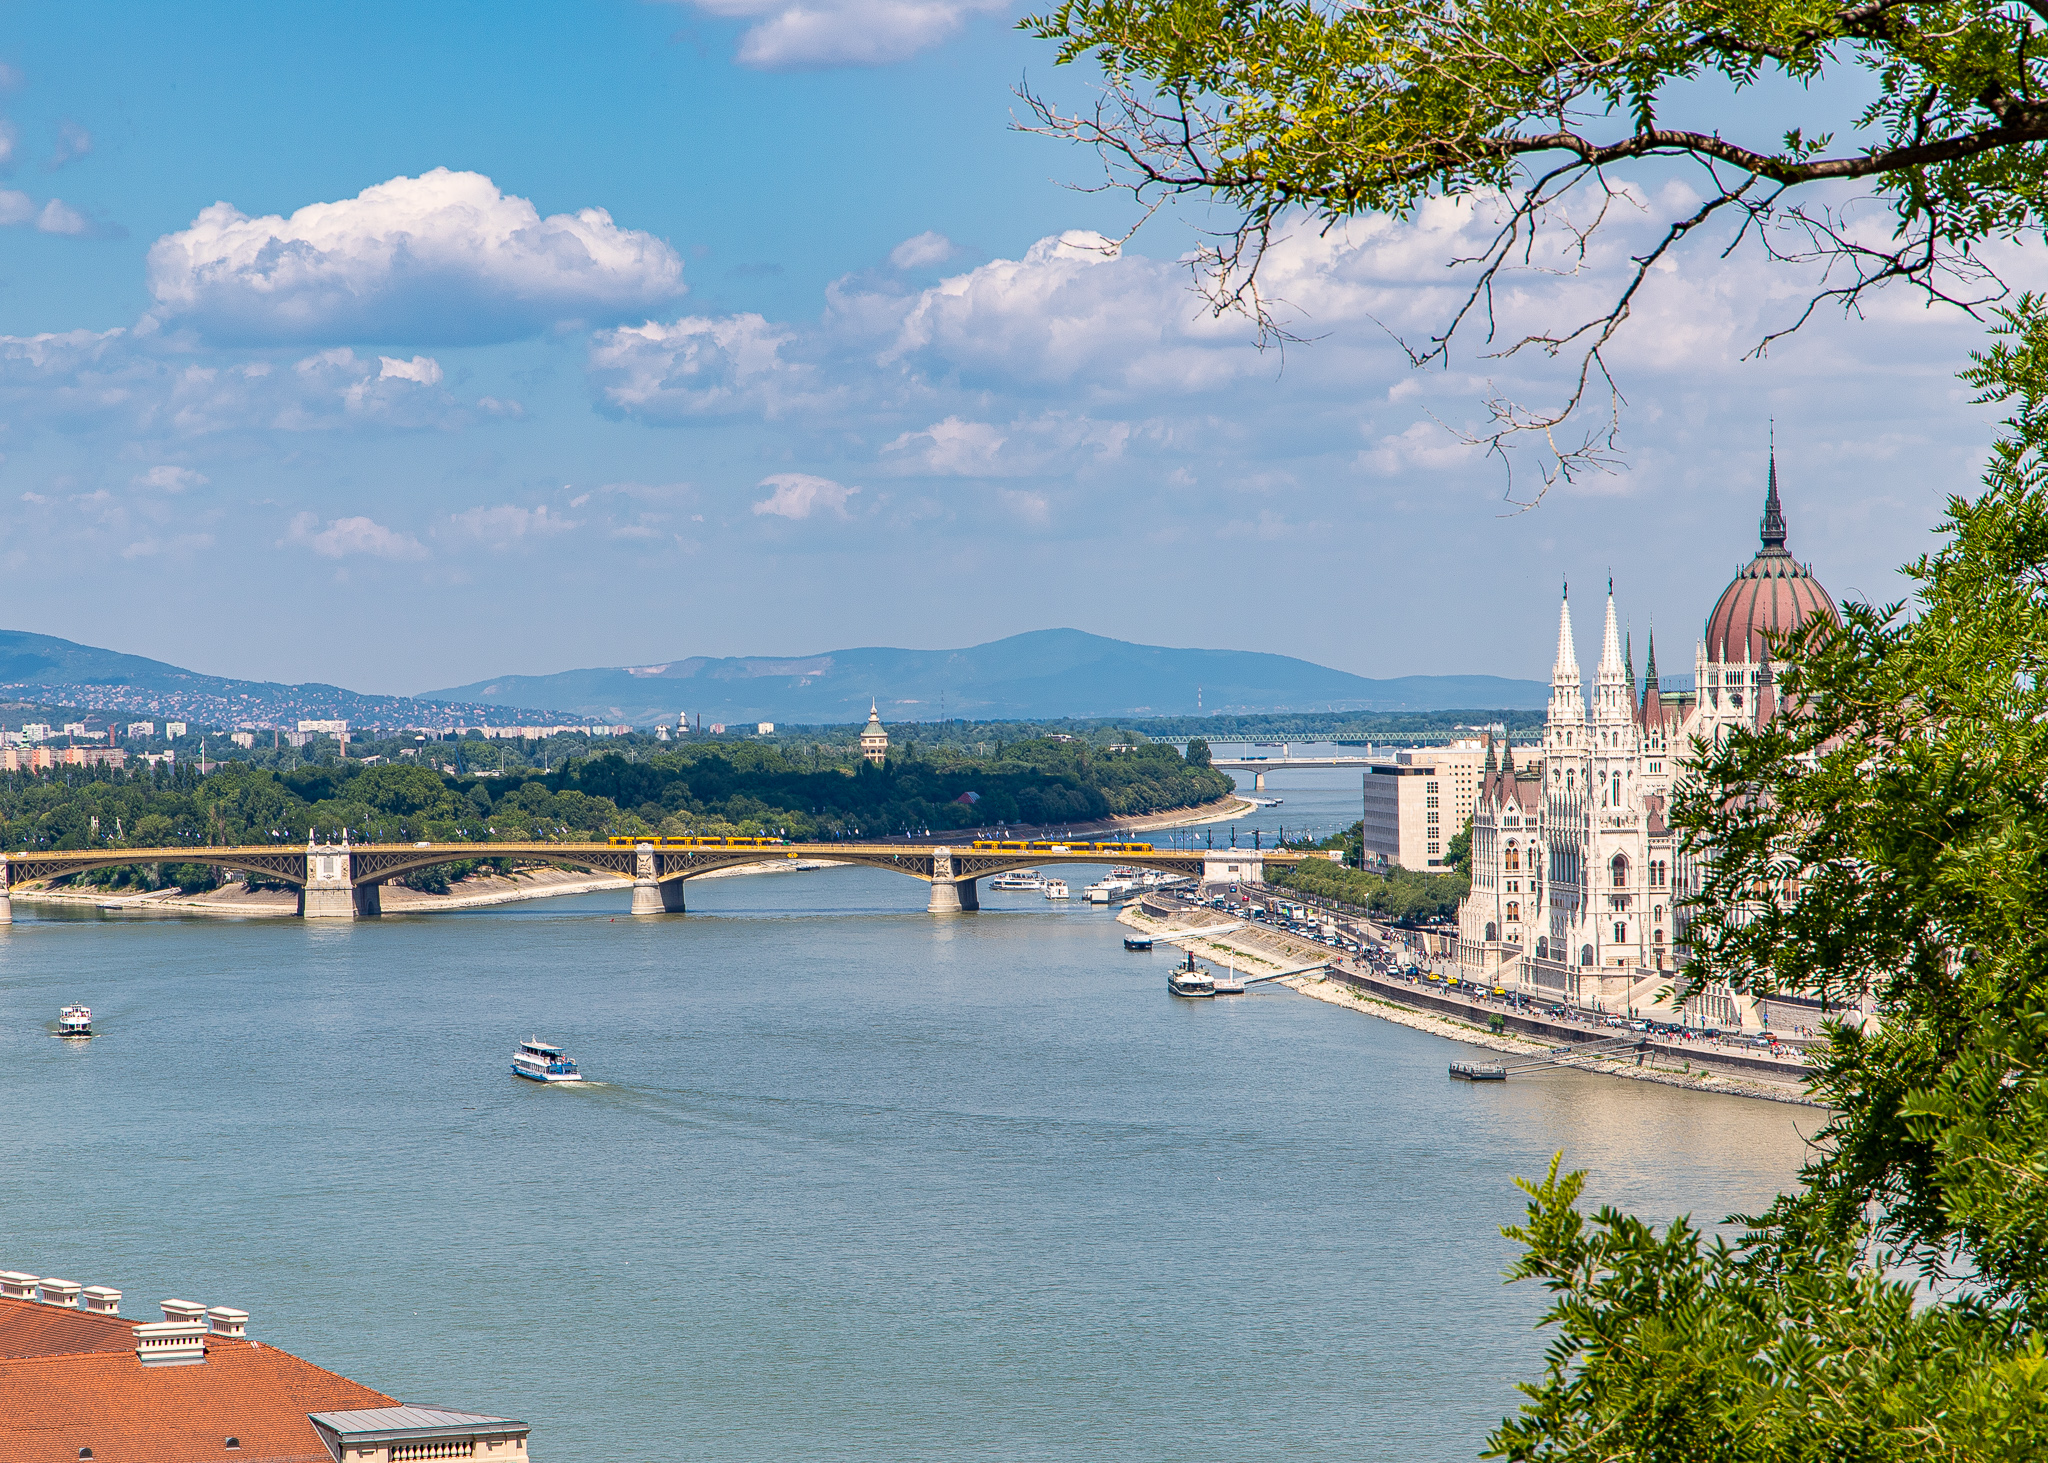 The Danube showcasing Margaret Island in the centre and Parliament buildings off to the right